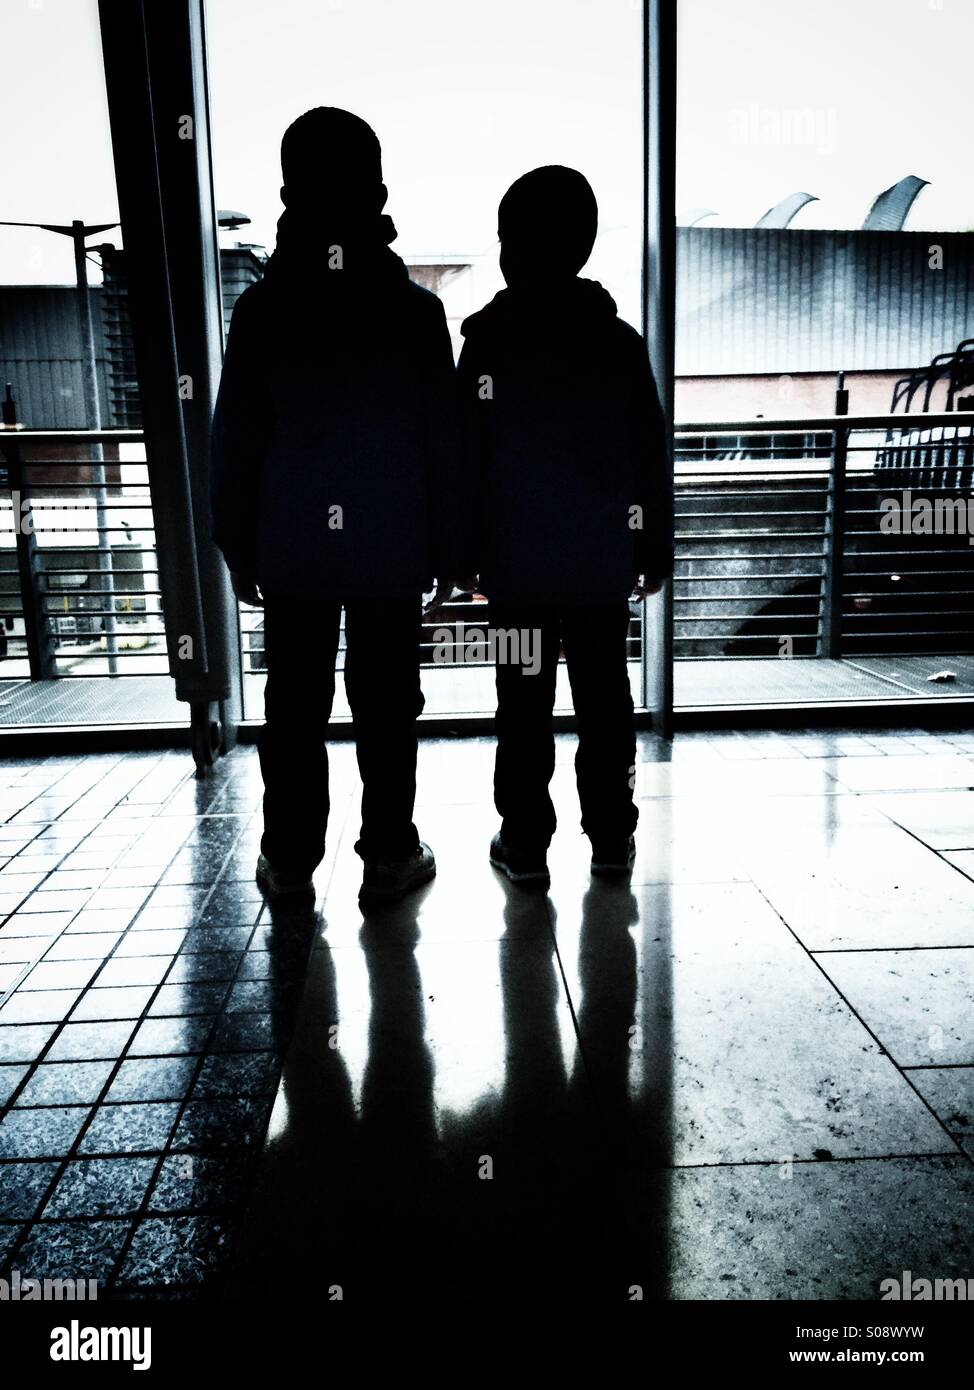 Two boys standing inside a building - Stock Image